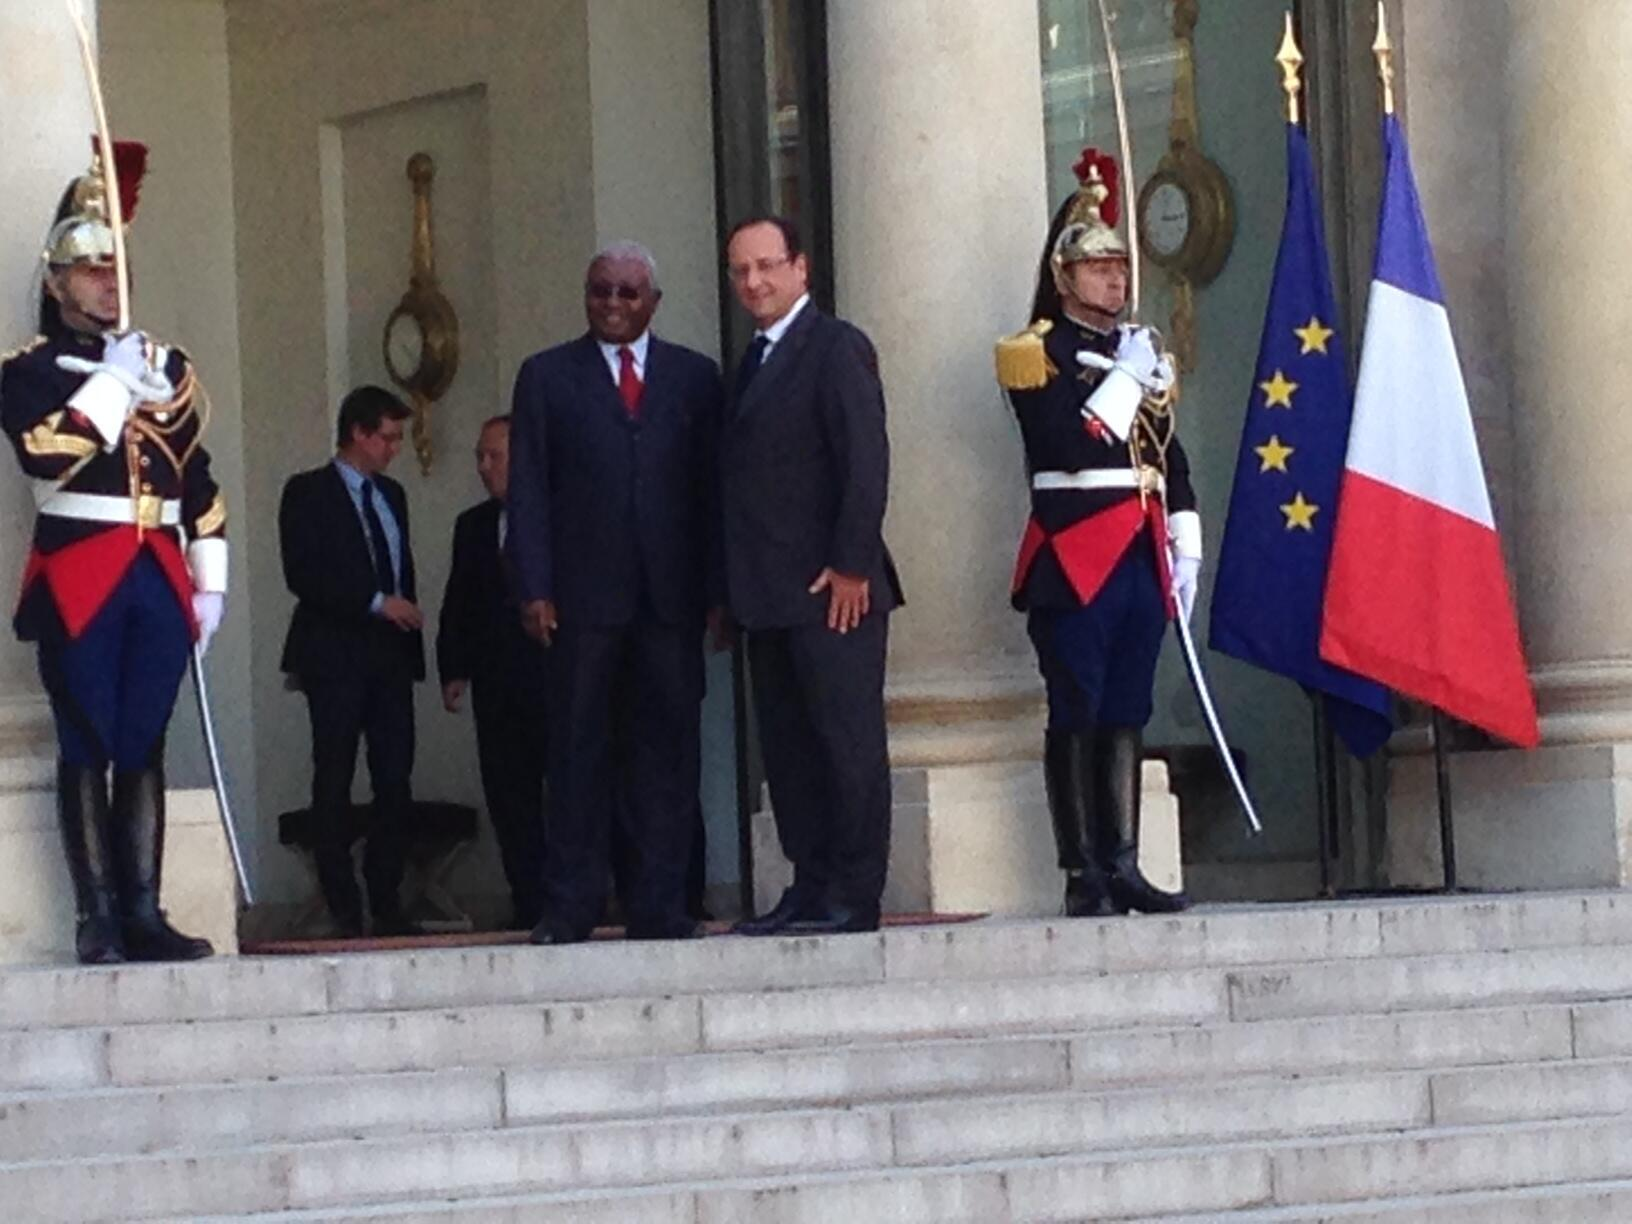 Mozambique's President Armando Guebuza with french President François Hollande (R) at the Elyqée Palace